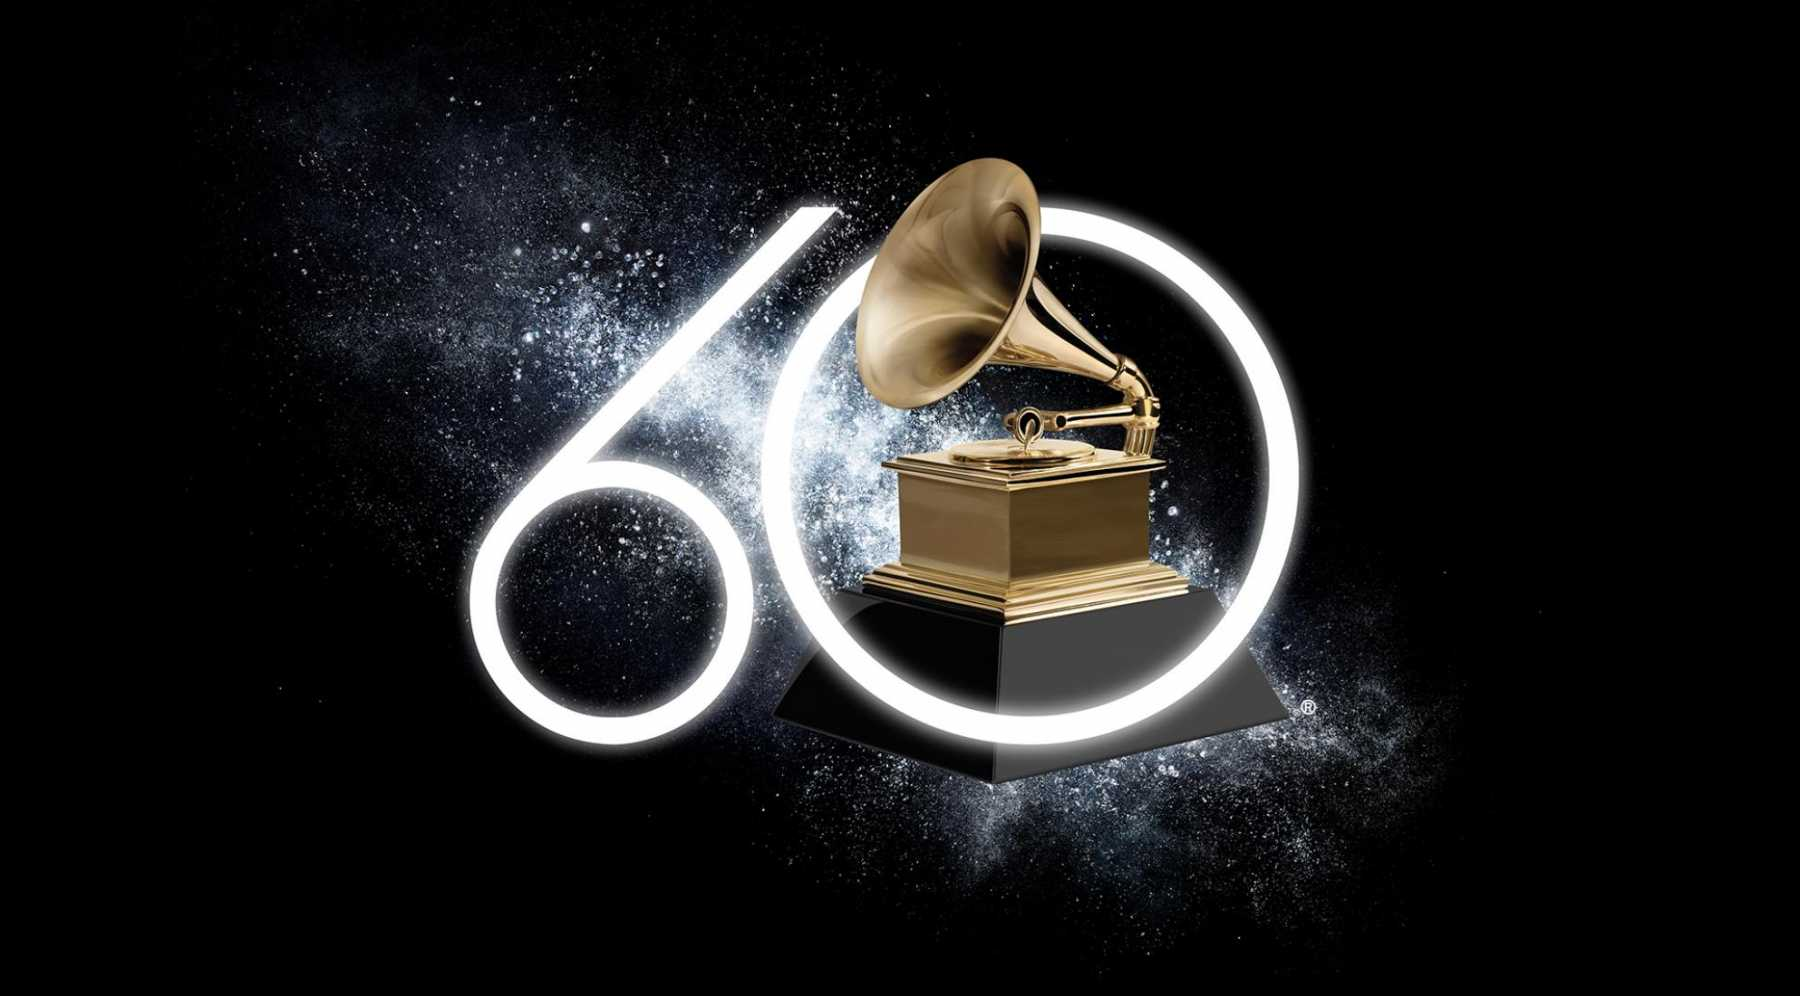 2018 Grammy Nominations Announced | 2018 Grammy